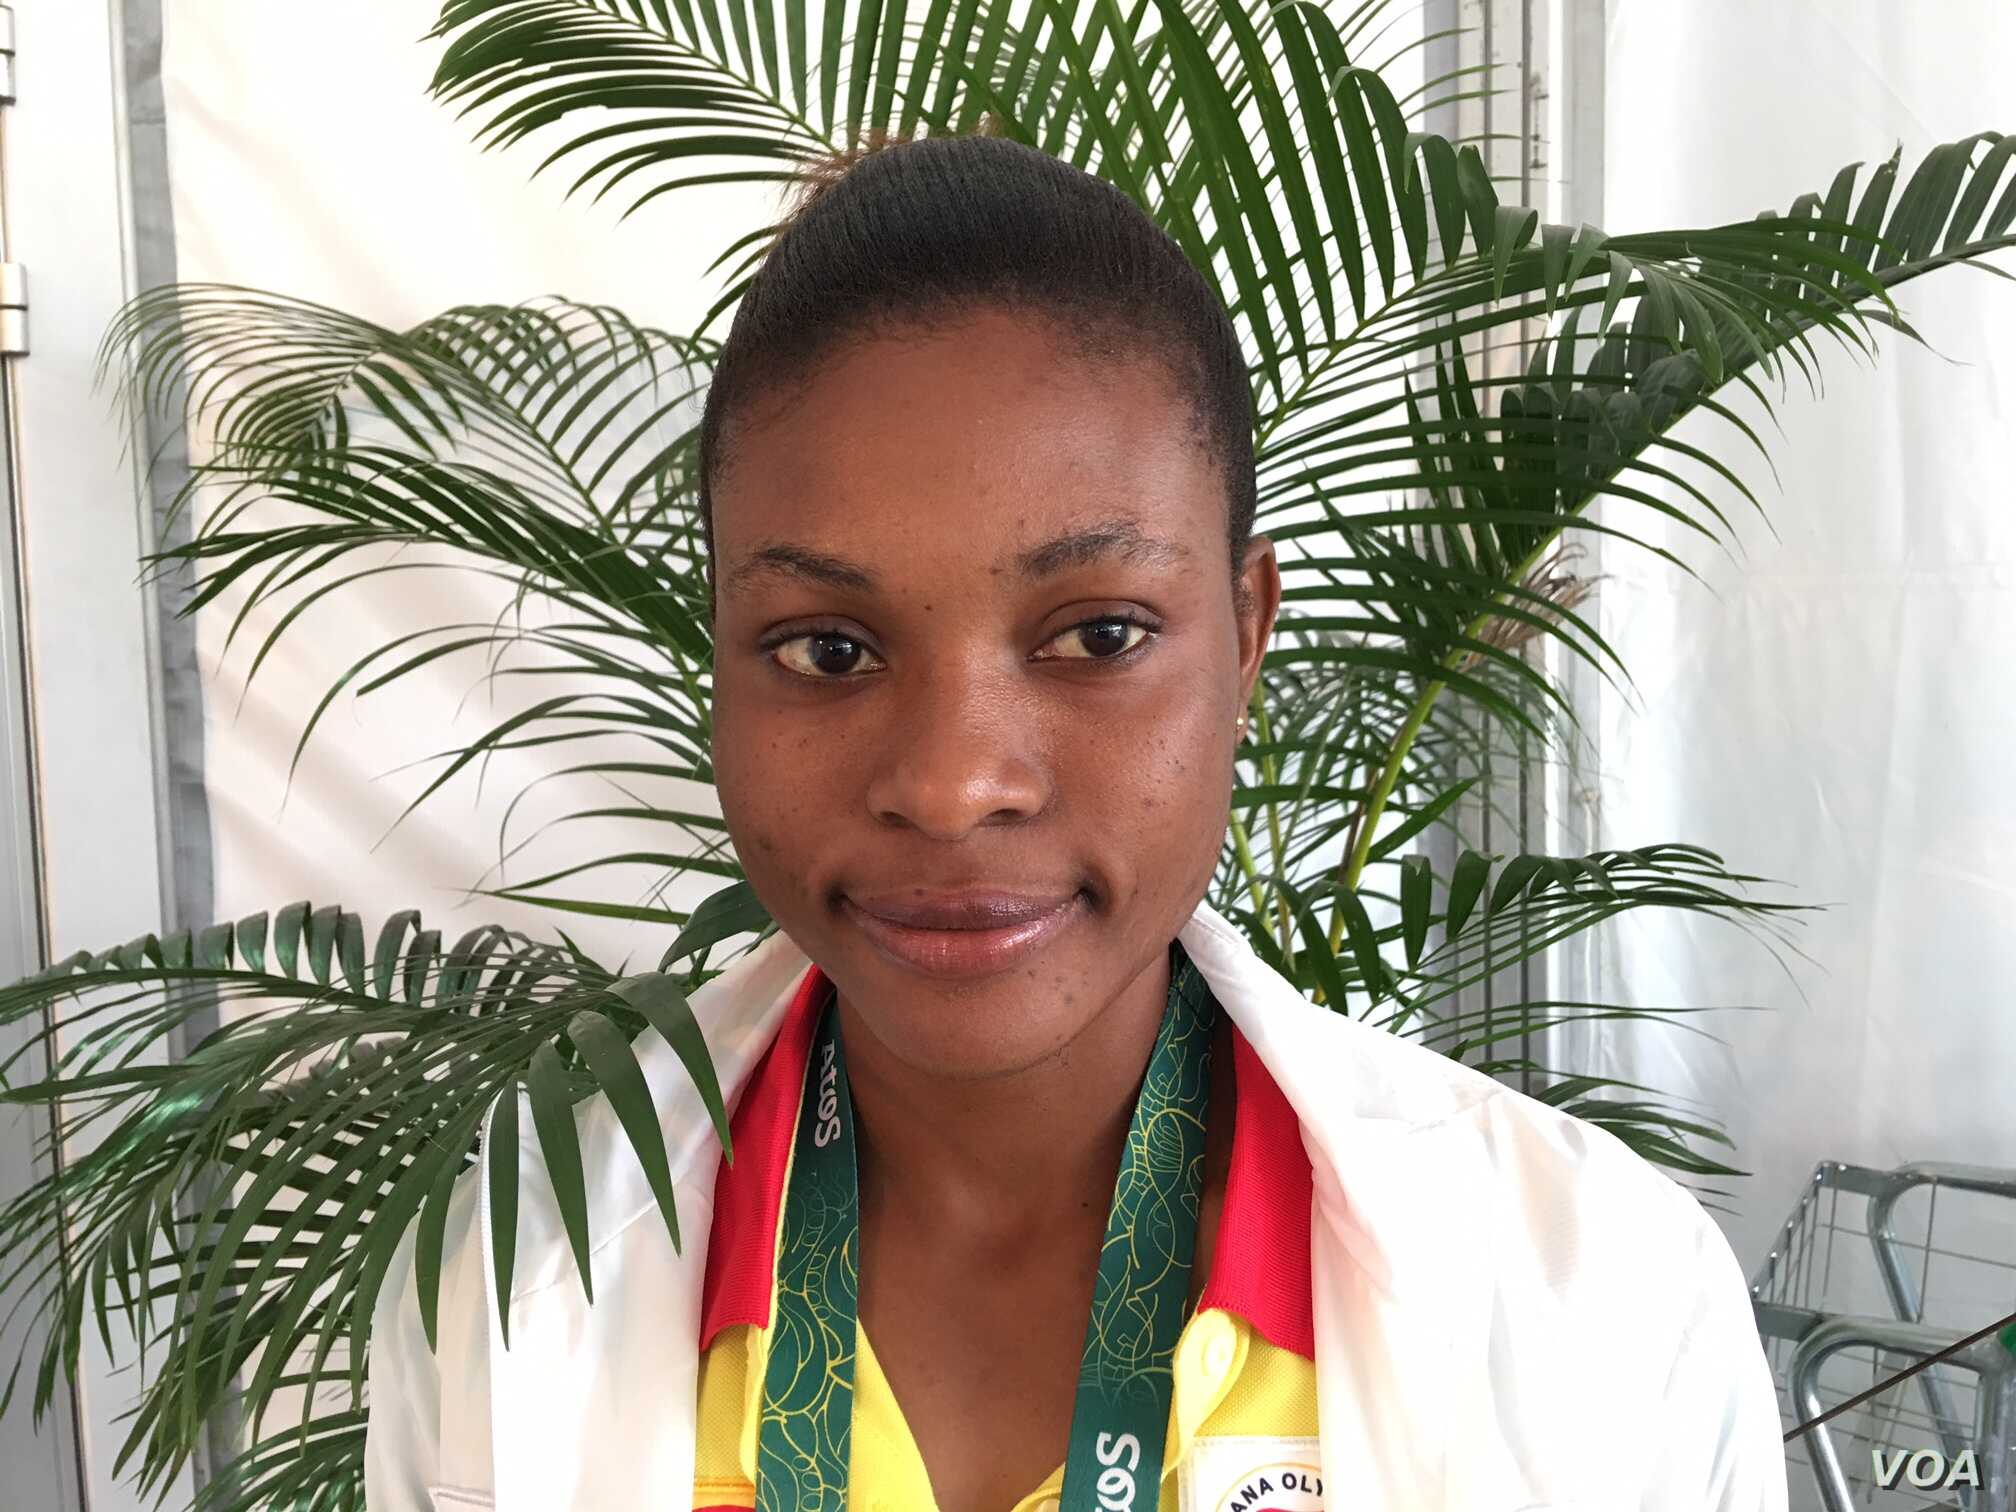 Janet Amponsah, 23, a junior at Middle Tennessee State University, will run Thursday with Ghana's 4x100-meter relay team, which is ranked among the top eight women's squads in Rio. (P. Brewer/VOA)